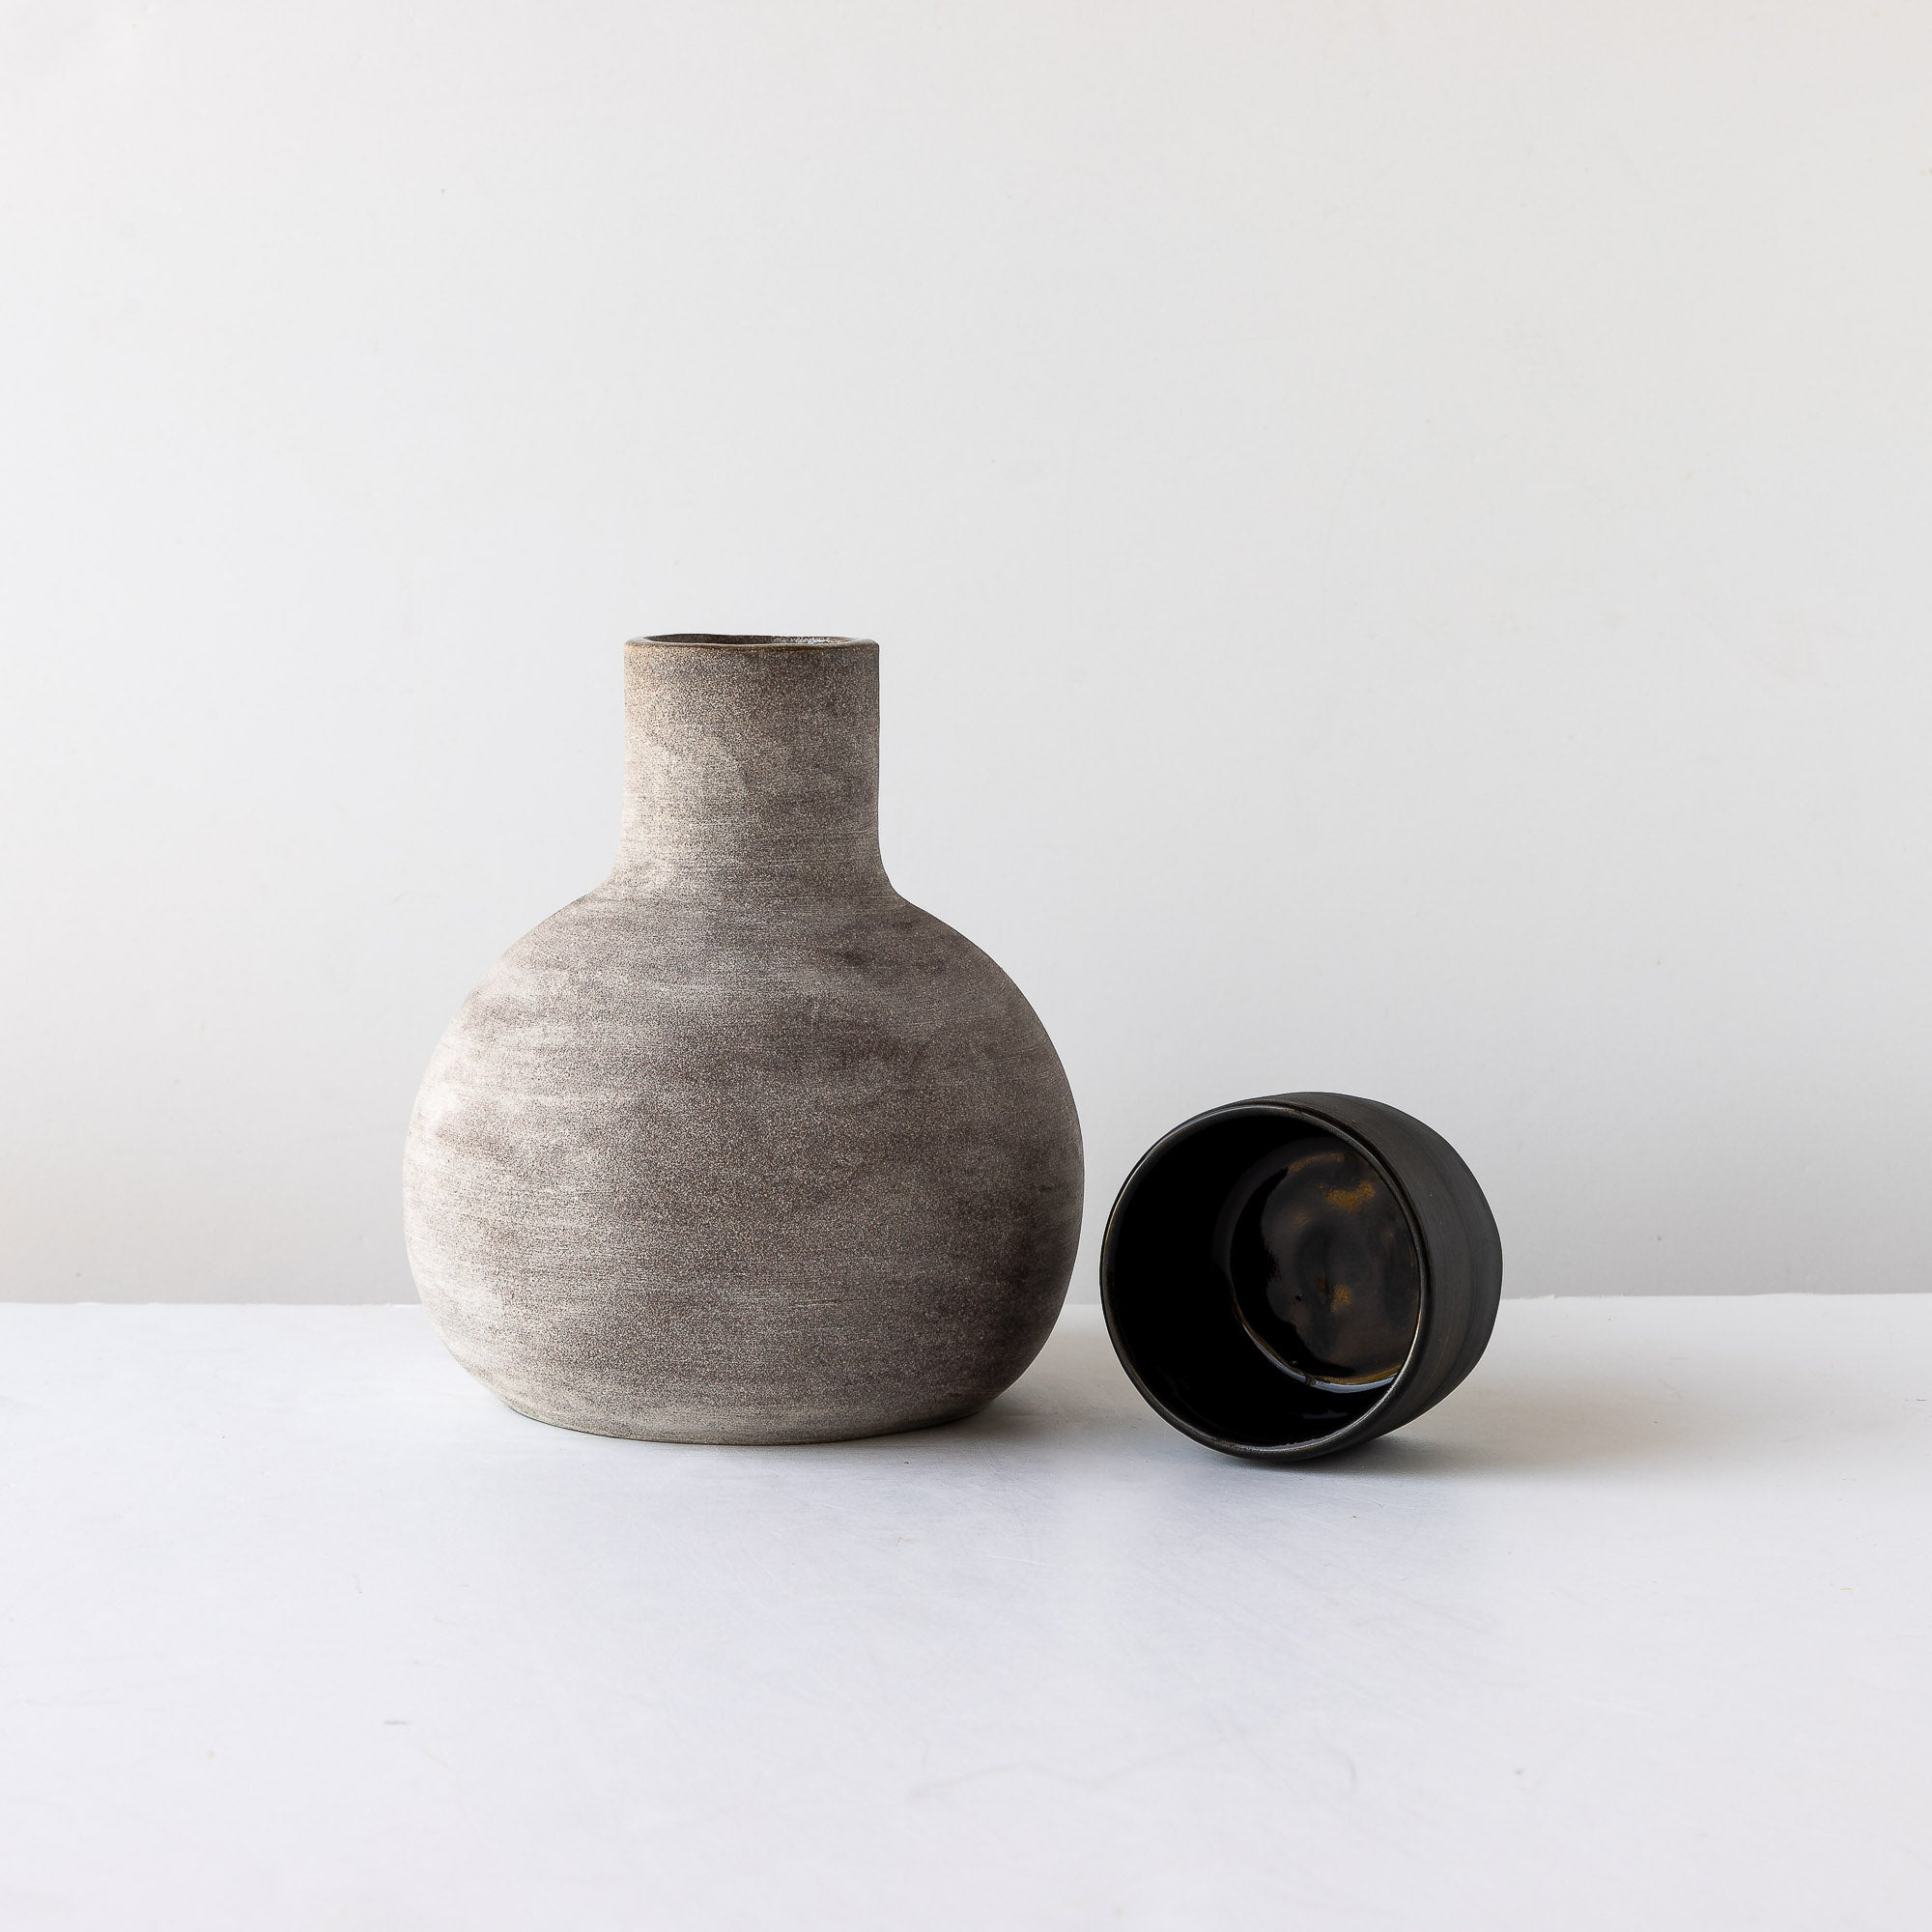 Two Handmade Stoneware Carafe & Tumbler Sets - Sold by Chic & Basta